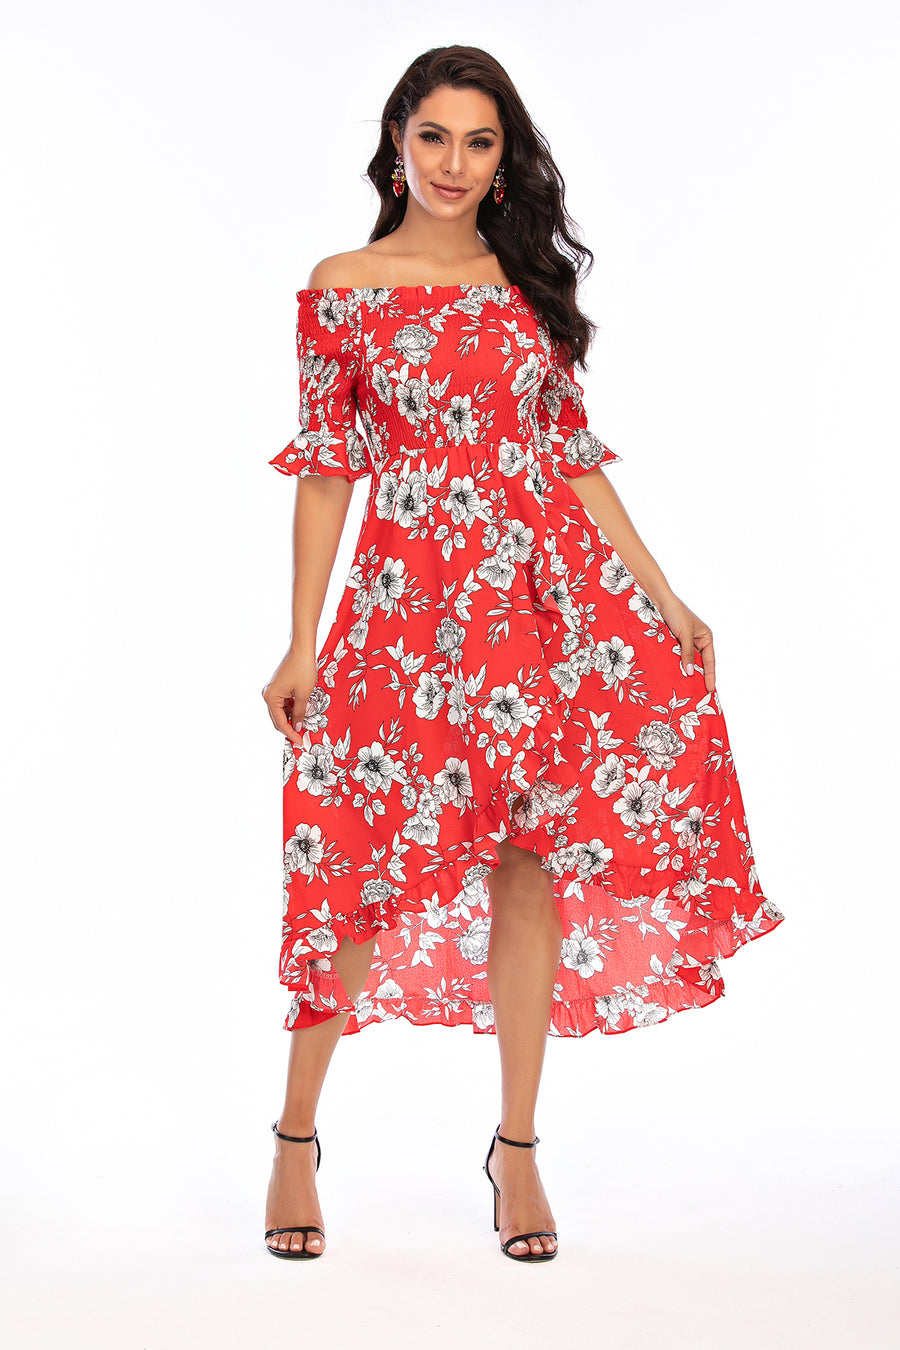 Off shoulder Red Floral Dress